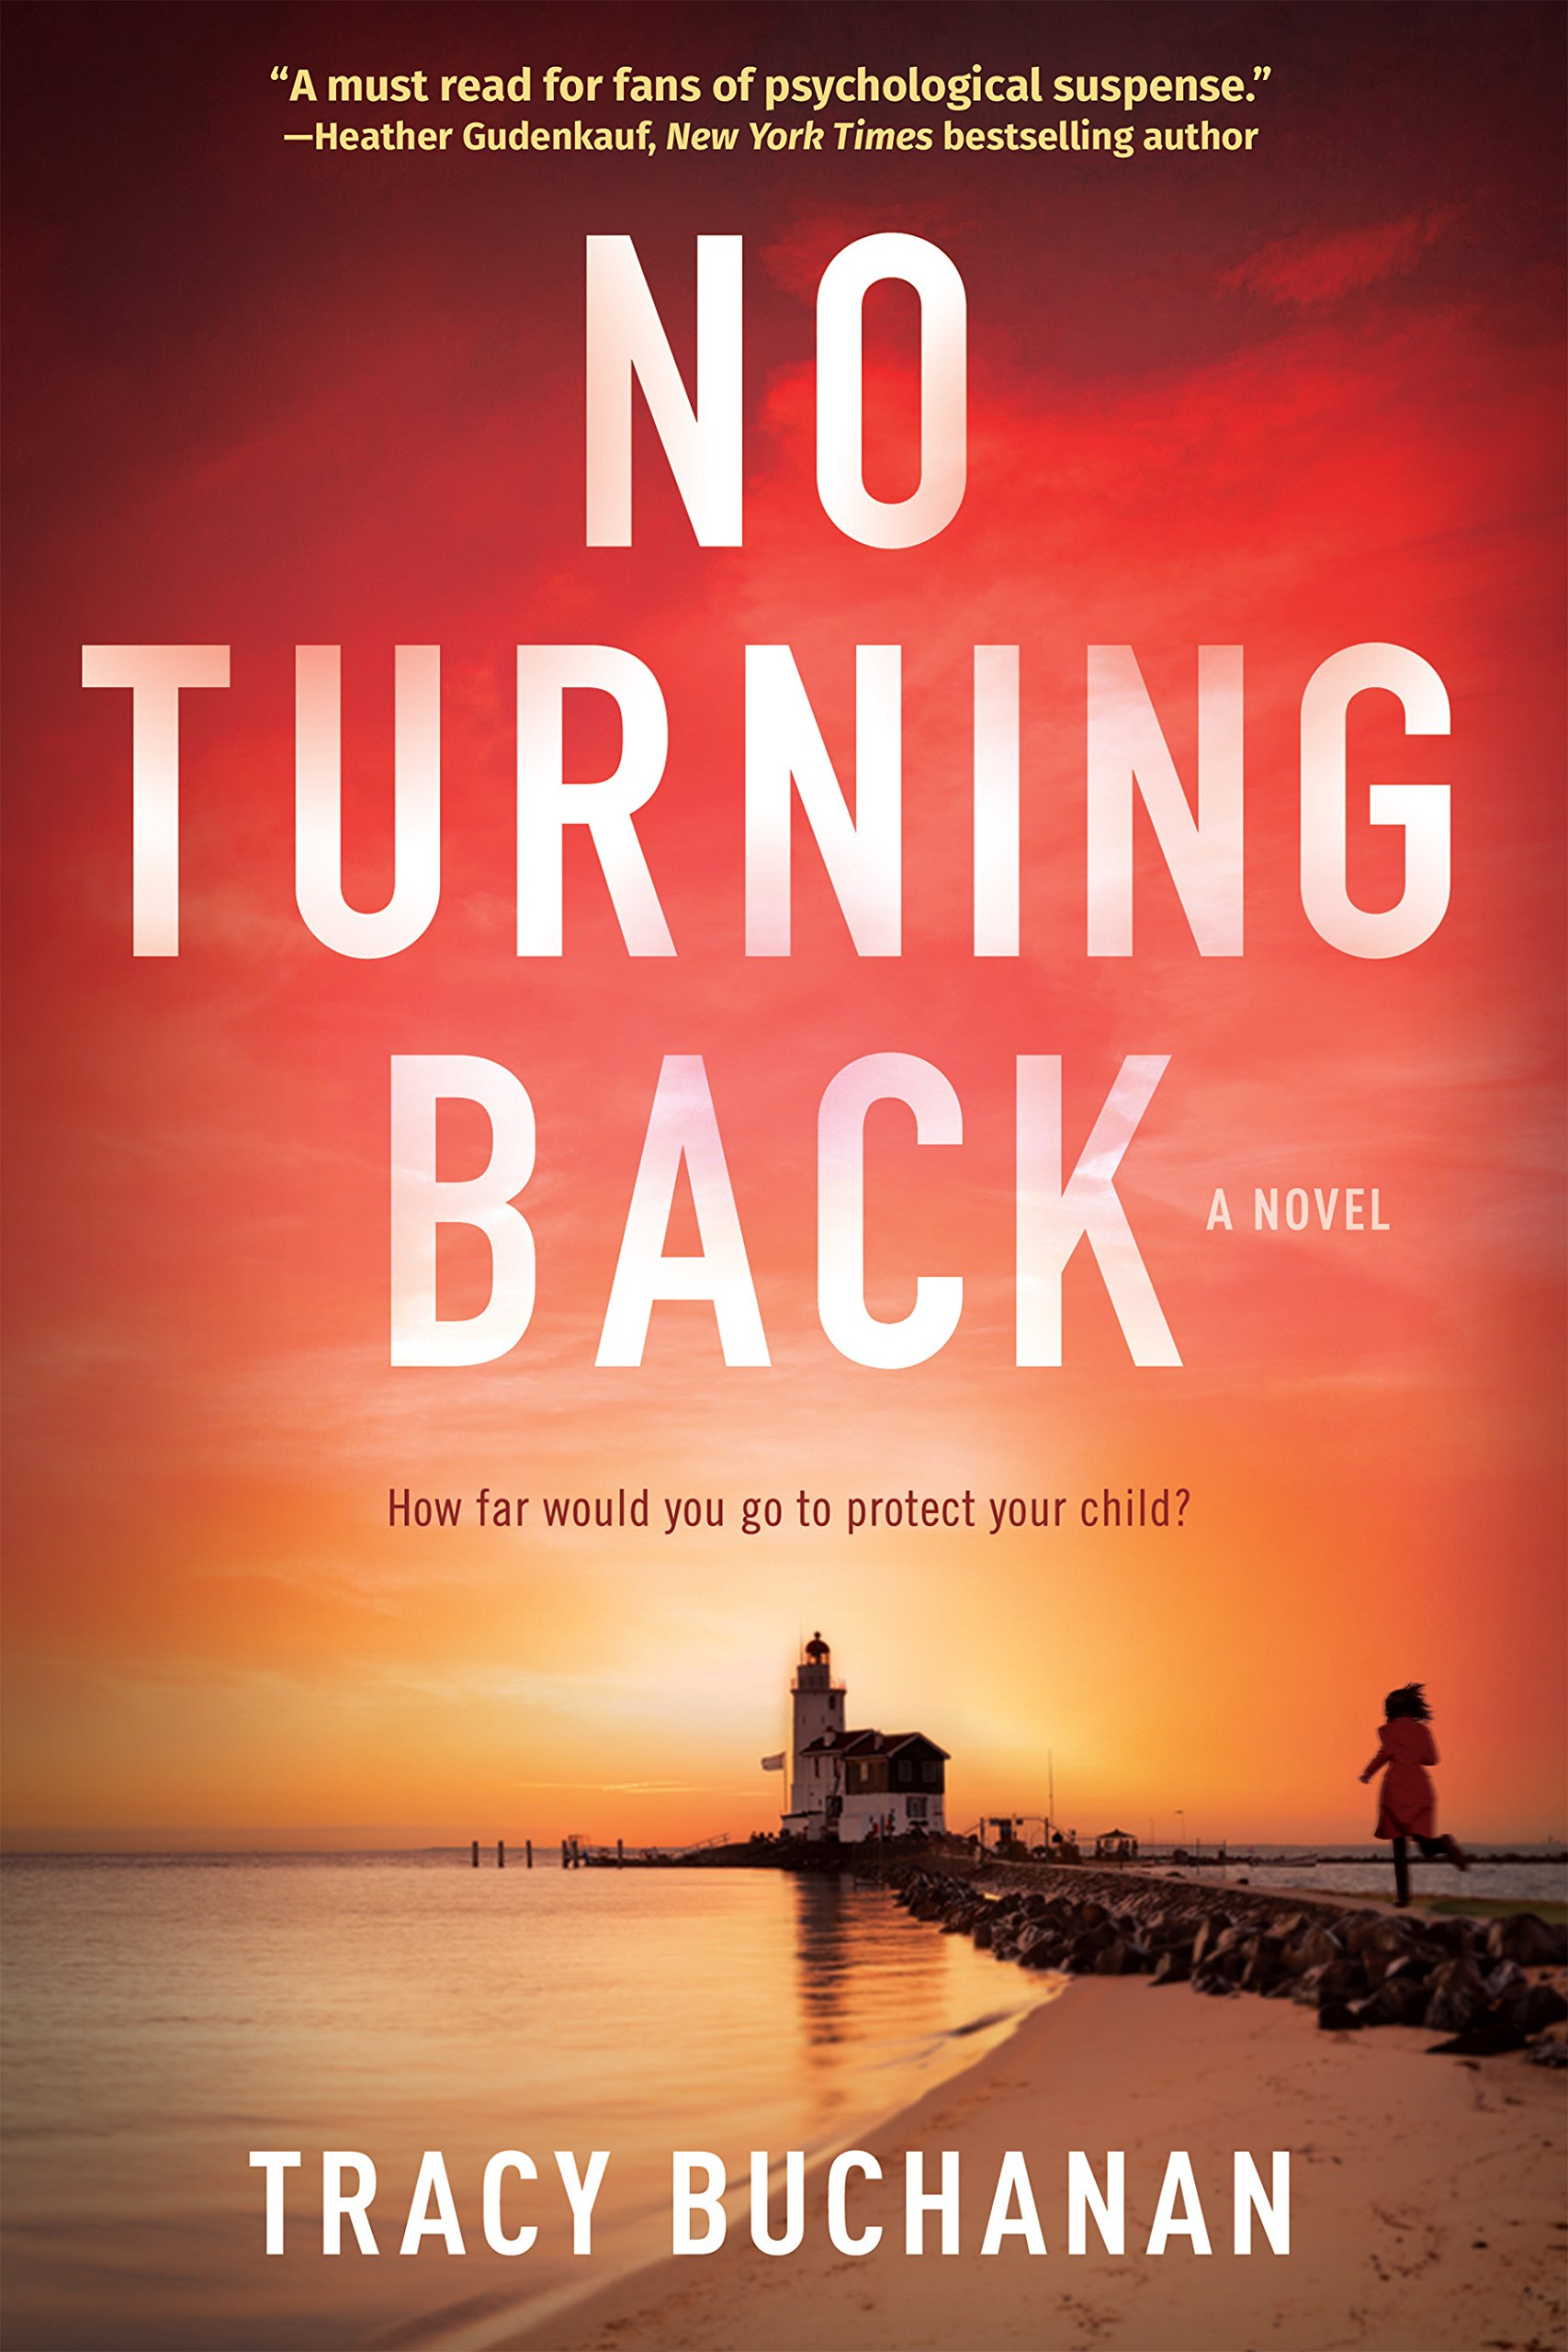 No Turning Back by Tracy Buchanan